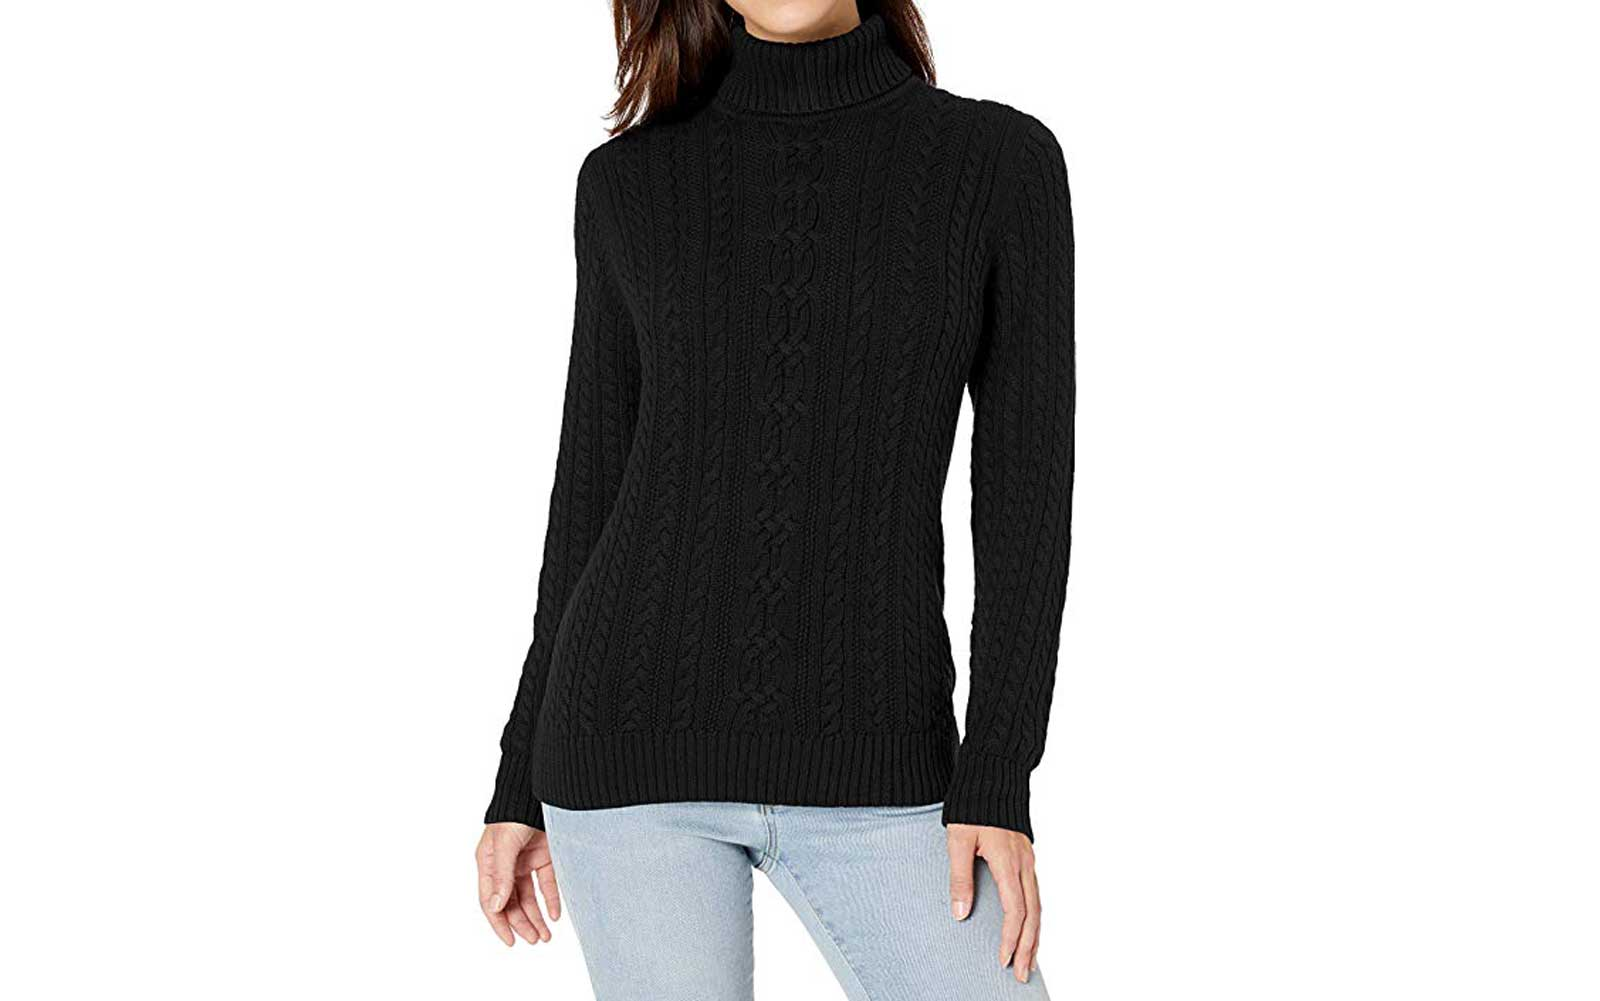 Black Cable-knit Turtleneck Sweater